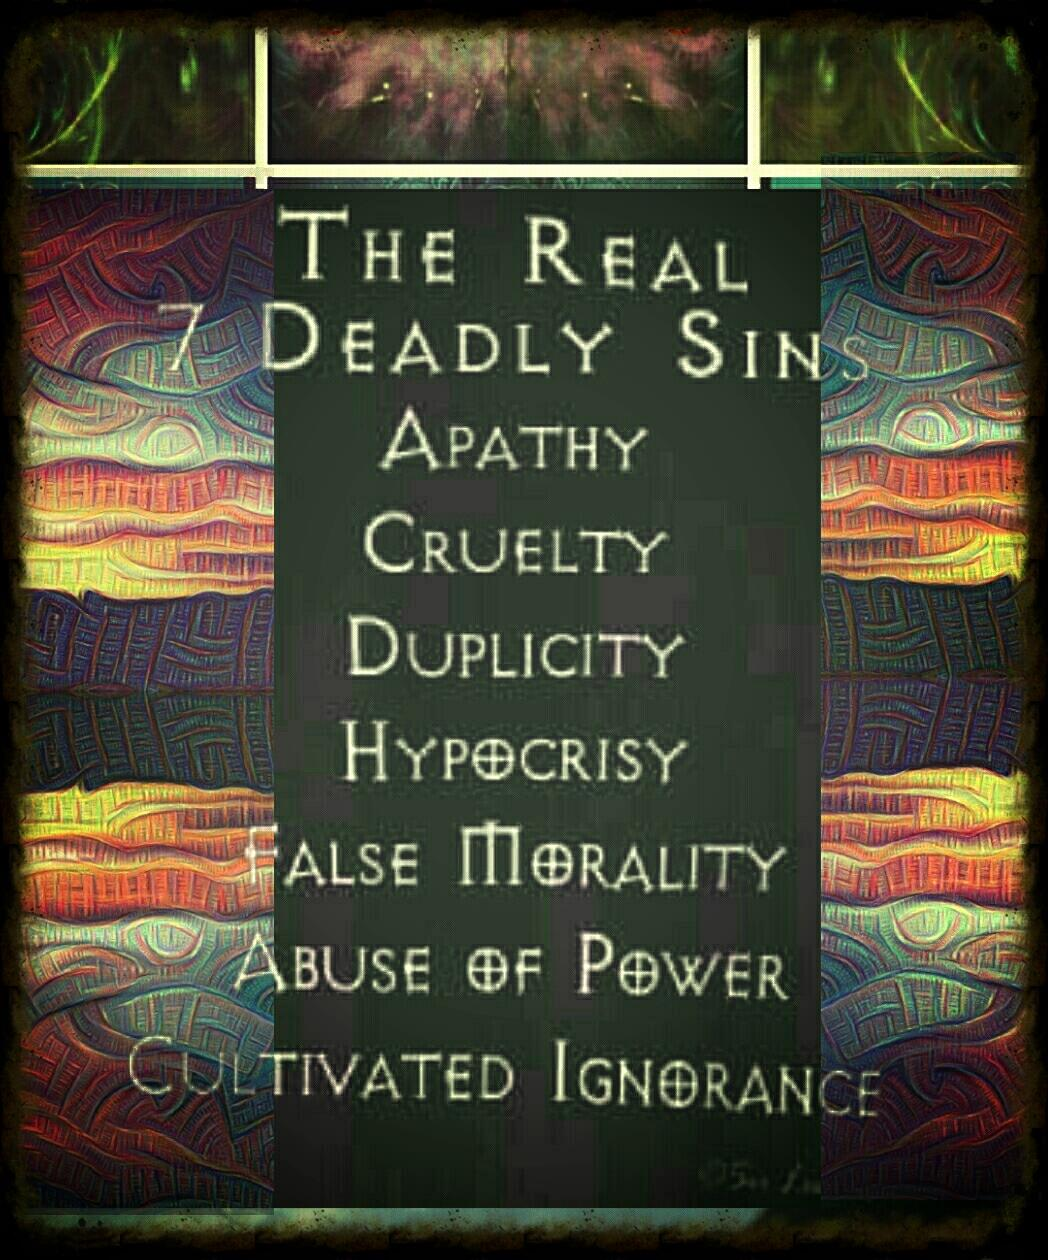 the real 7 deadly sins are apathy cruelty duplicity hypocrisy, false morality, abuse of power, cultivated ignorance